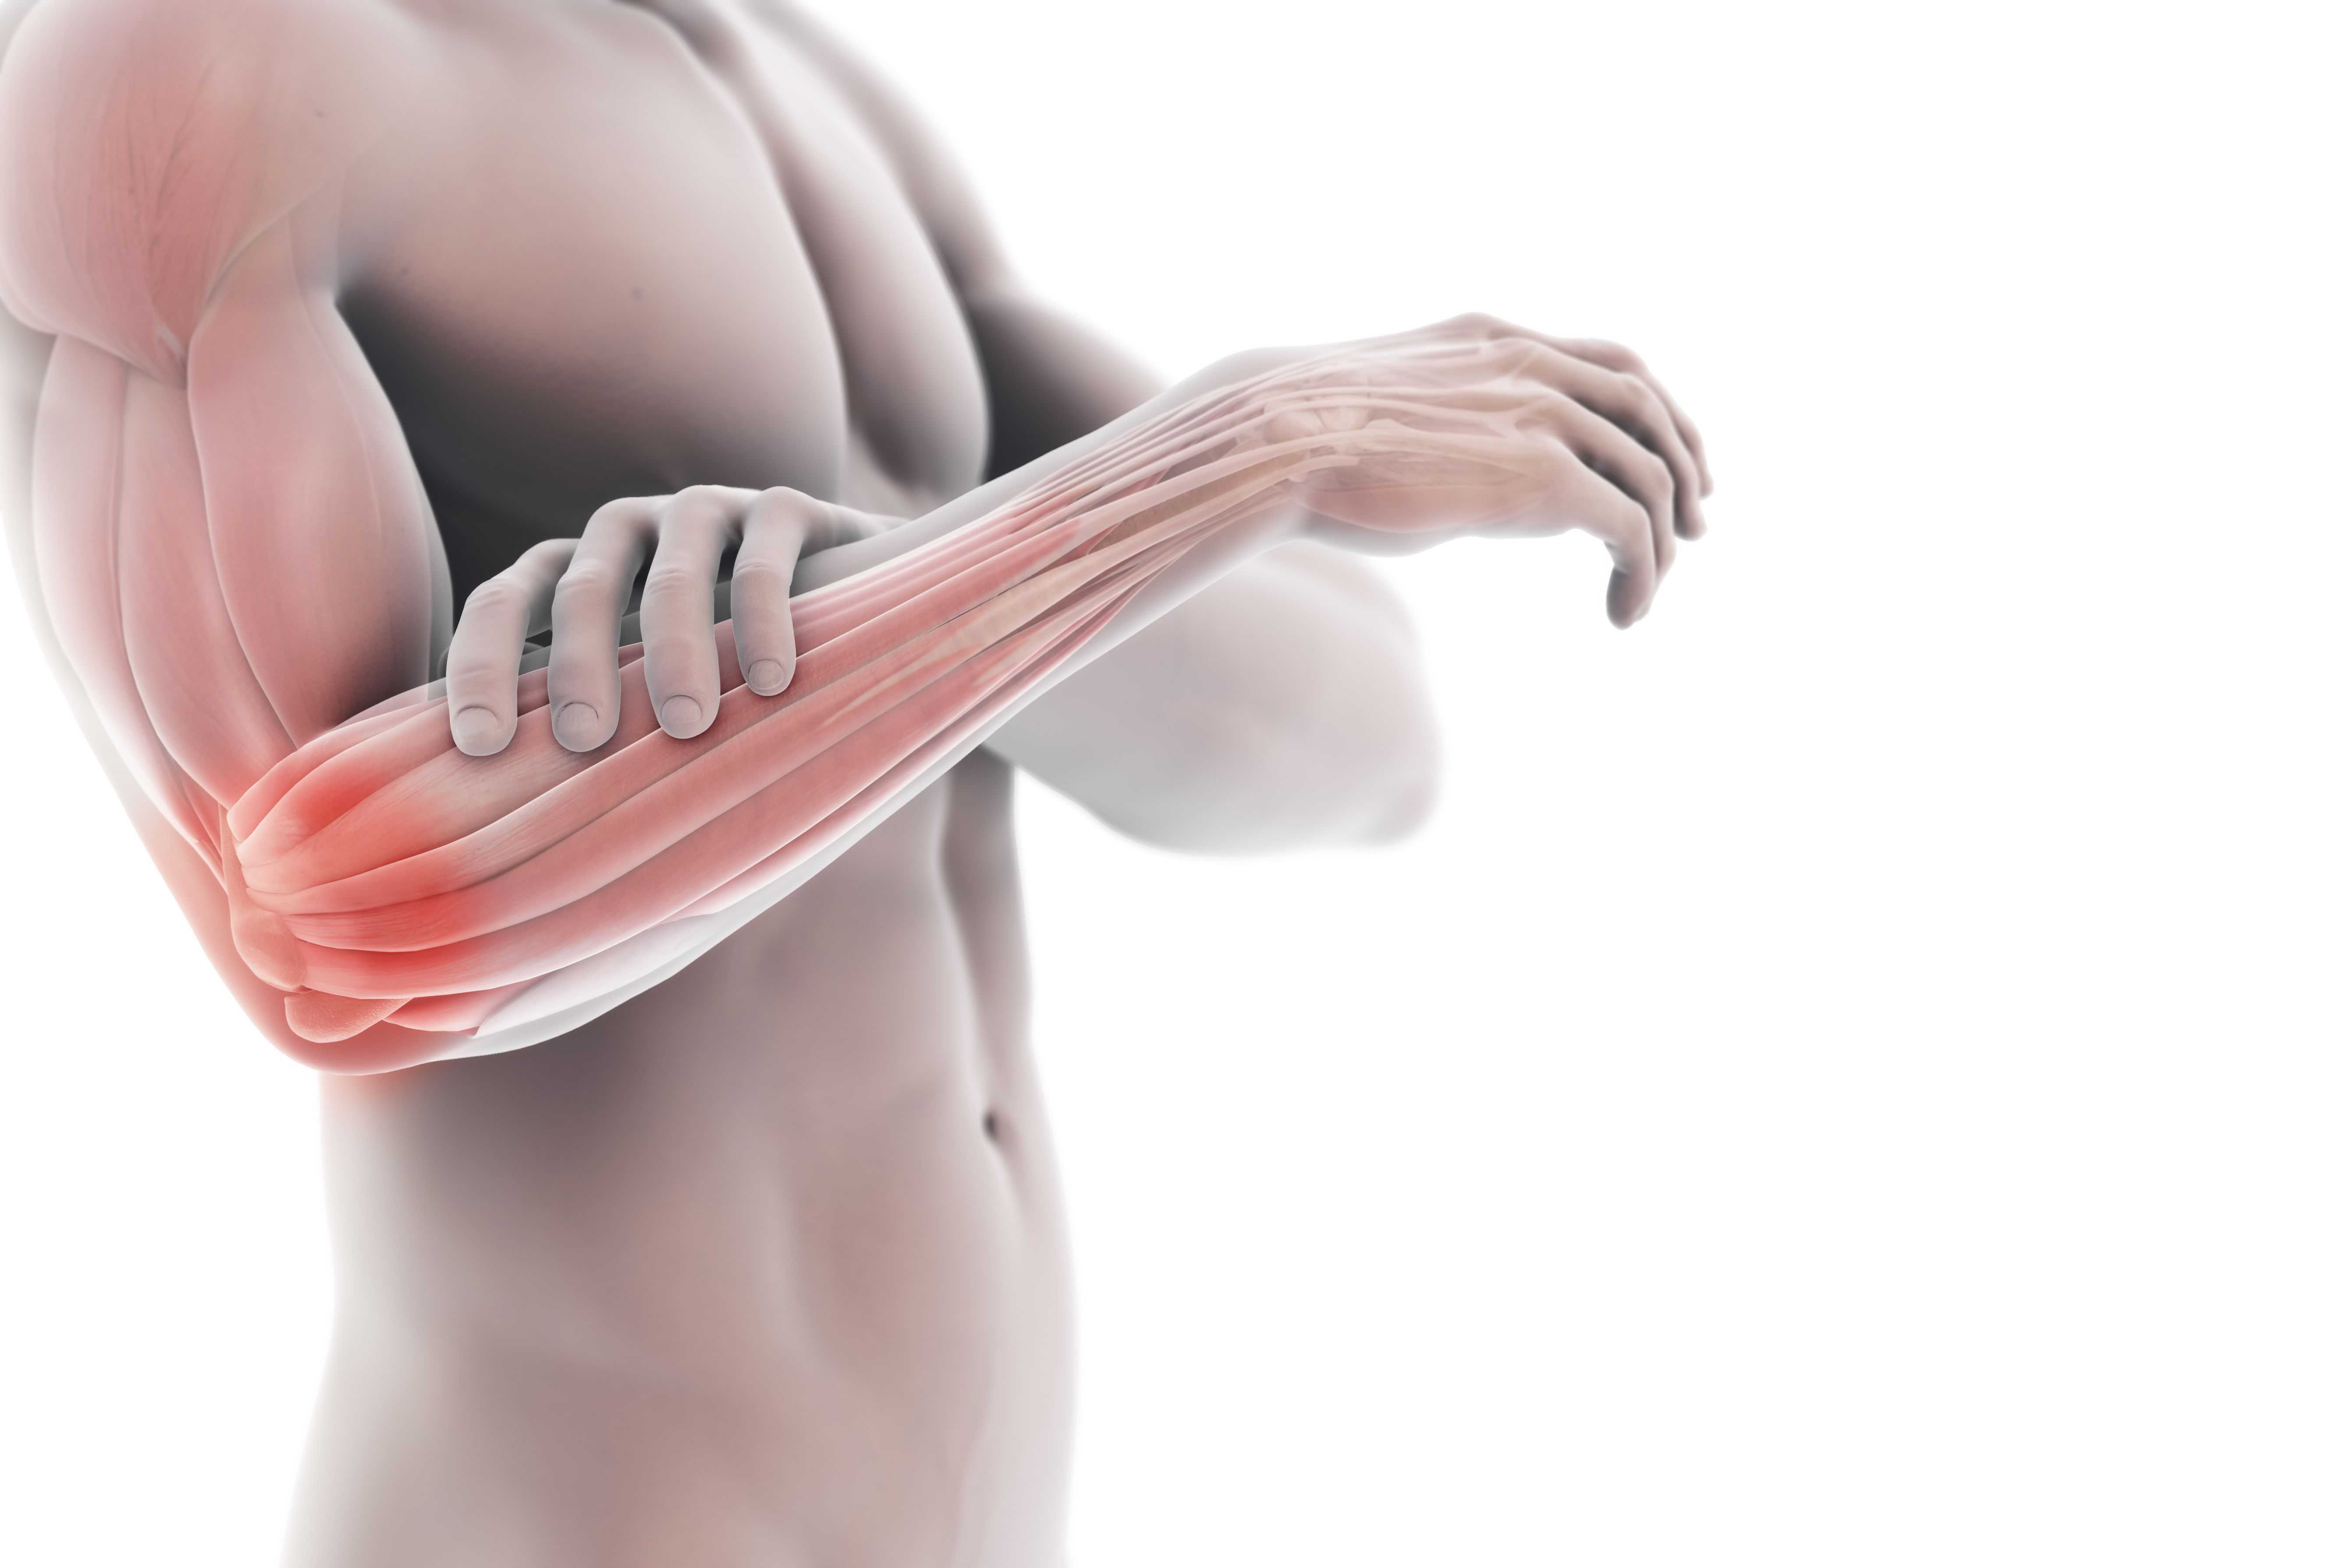 Tendonitis: Causes, Symptoms, and Treatment